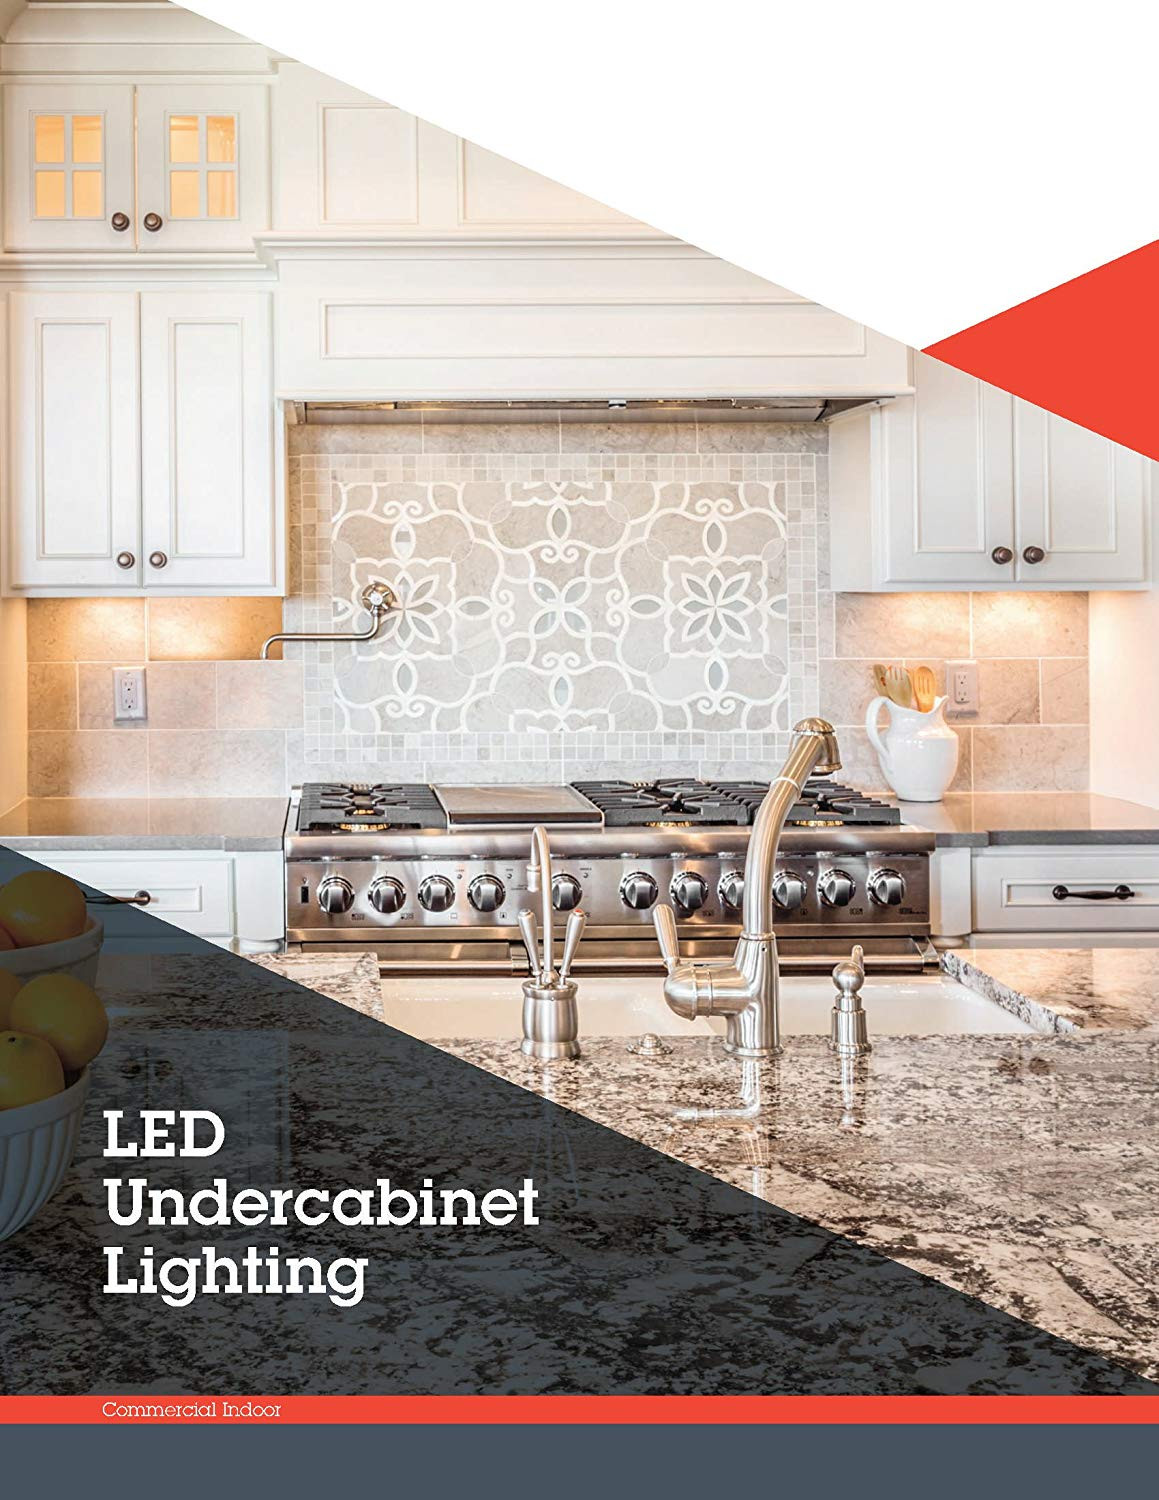 29 Famous Lm Engineered Hardwood Flooring Reviews 2021 free download lm engineered hardwood flooring reviews of lithonia lighting ucld 18 bn m4 led under cabinet light inside lithonia lighting ucld 18 bn m4 led under cabinet light directional spotlight ceilin